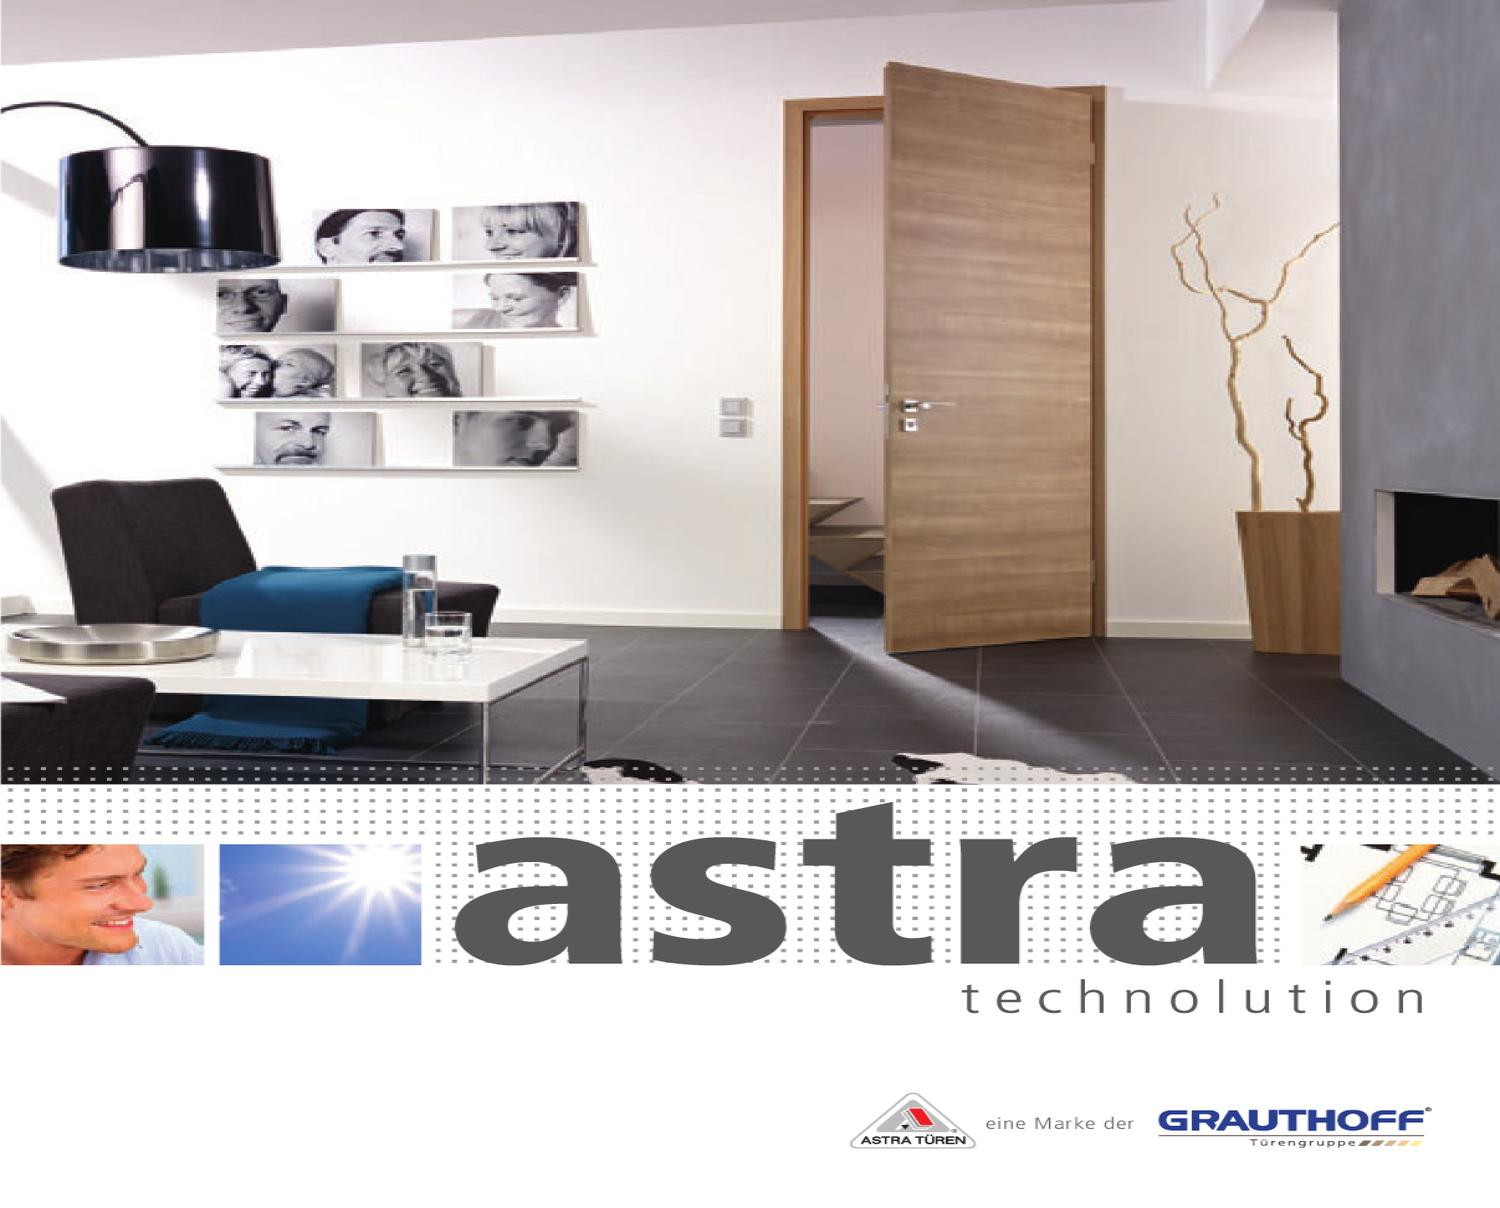 astra technolution t ren by holzland dostler gmbh issuu. Black Bedroom Furniture Sets. Home Design Ideas